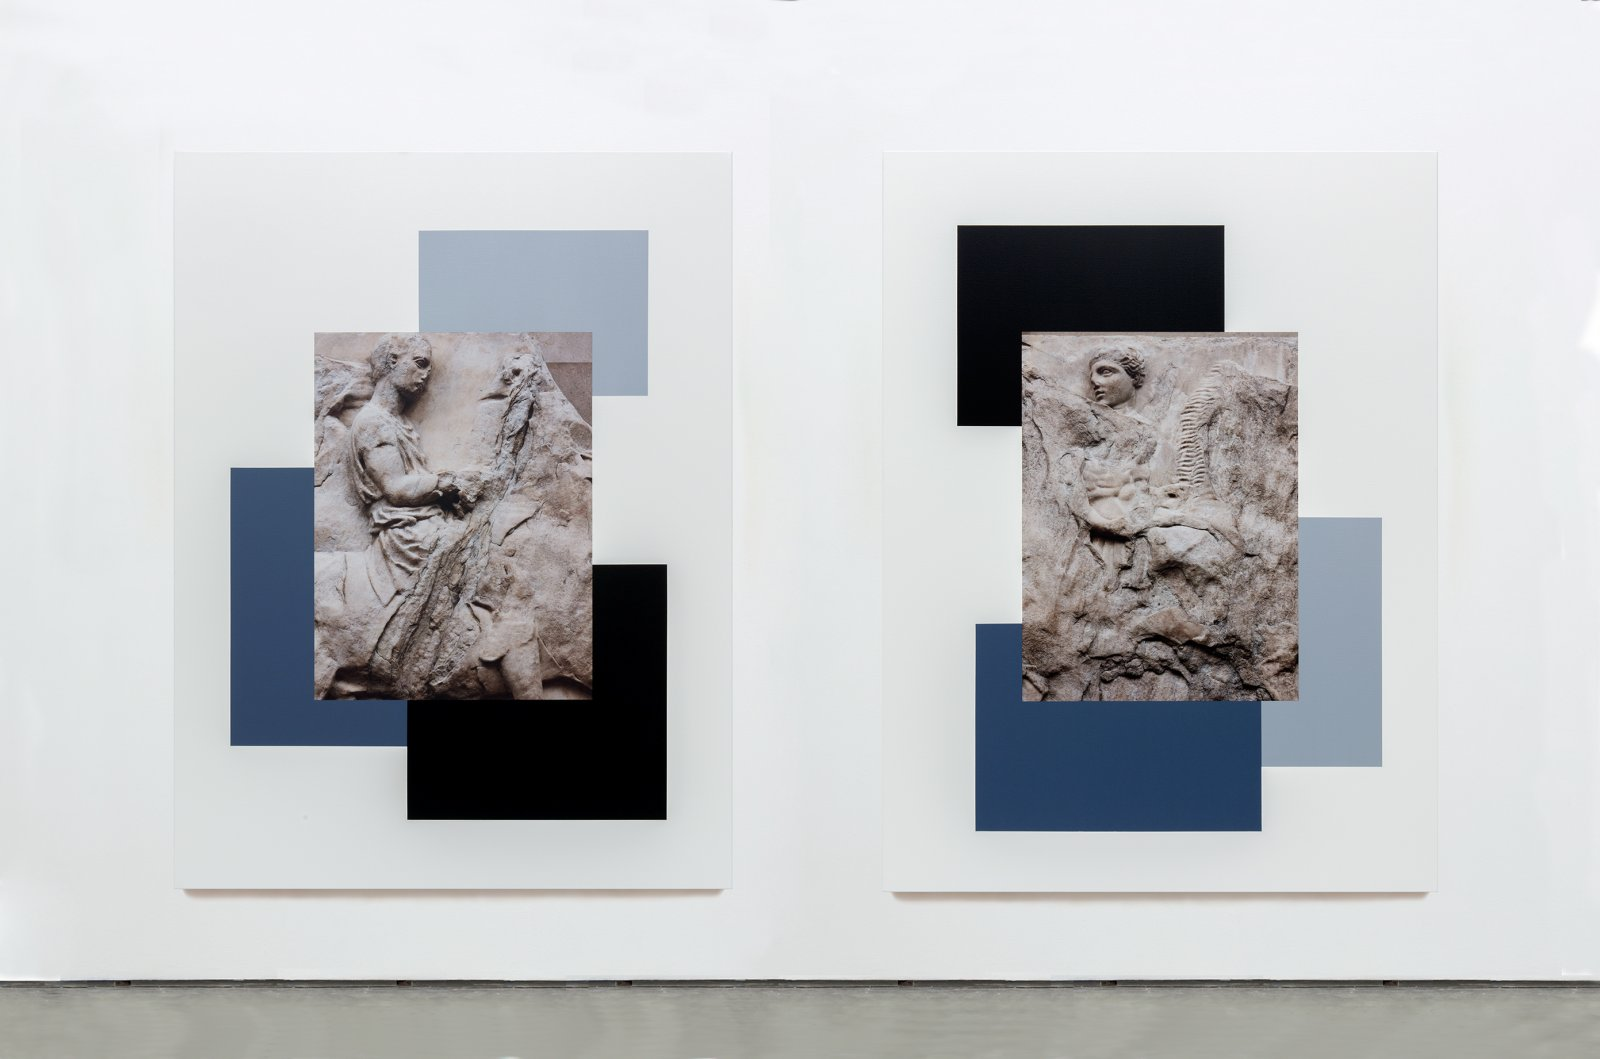 Ian Wallace,The Riders of the Parthenon Frieze I & II, 2013, diptych,photolaminate and acrylic on canvas, each 80 x 60in. (203 x 153cm)